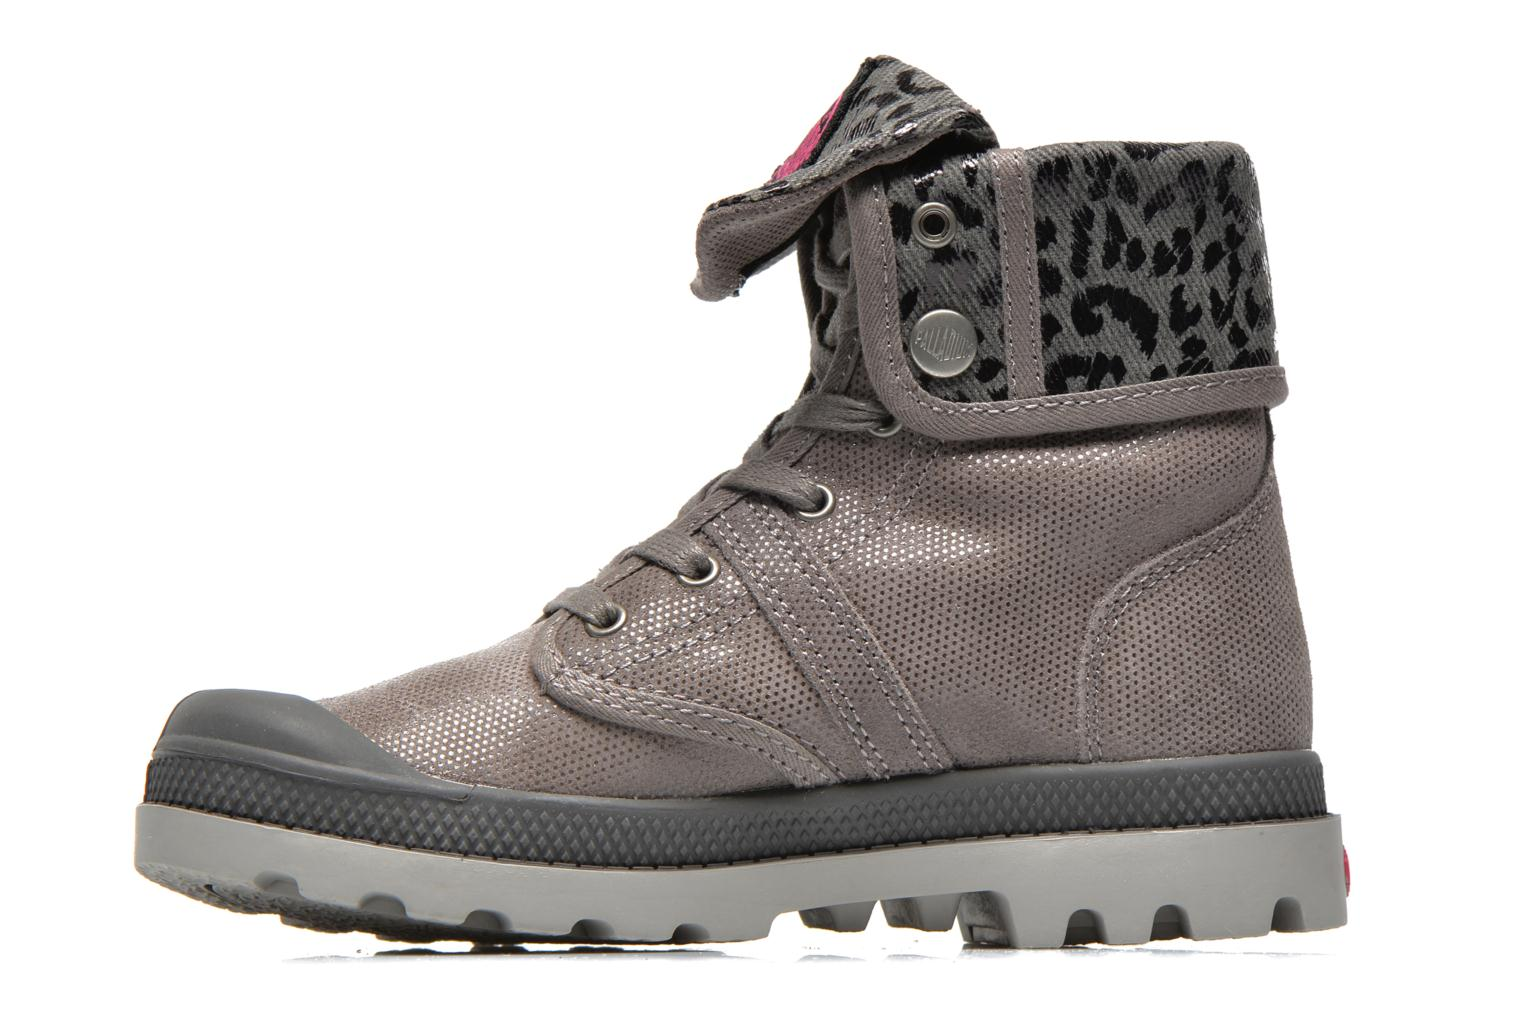 Bottines et boots Palladium Baggy Fl K Gris vue face